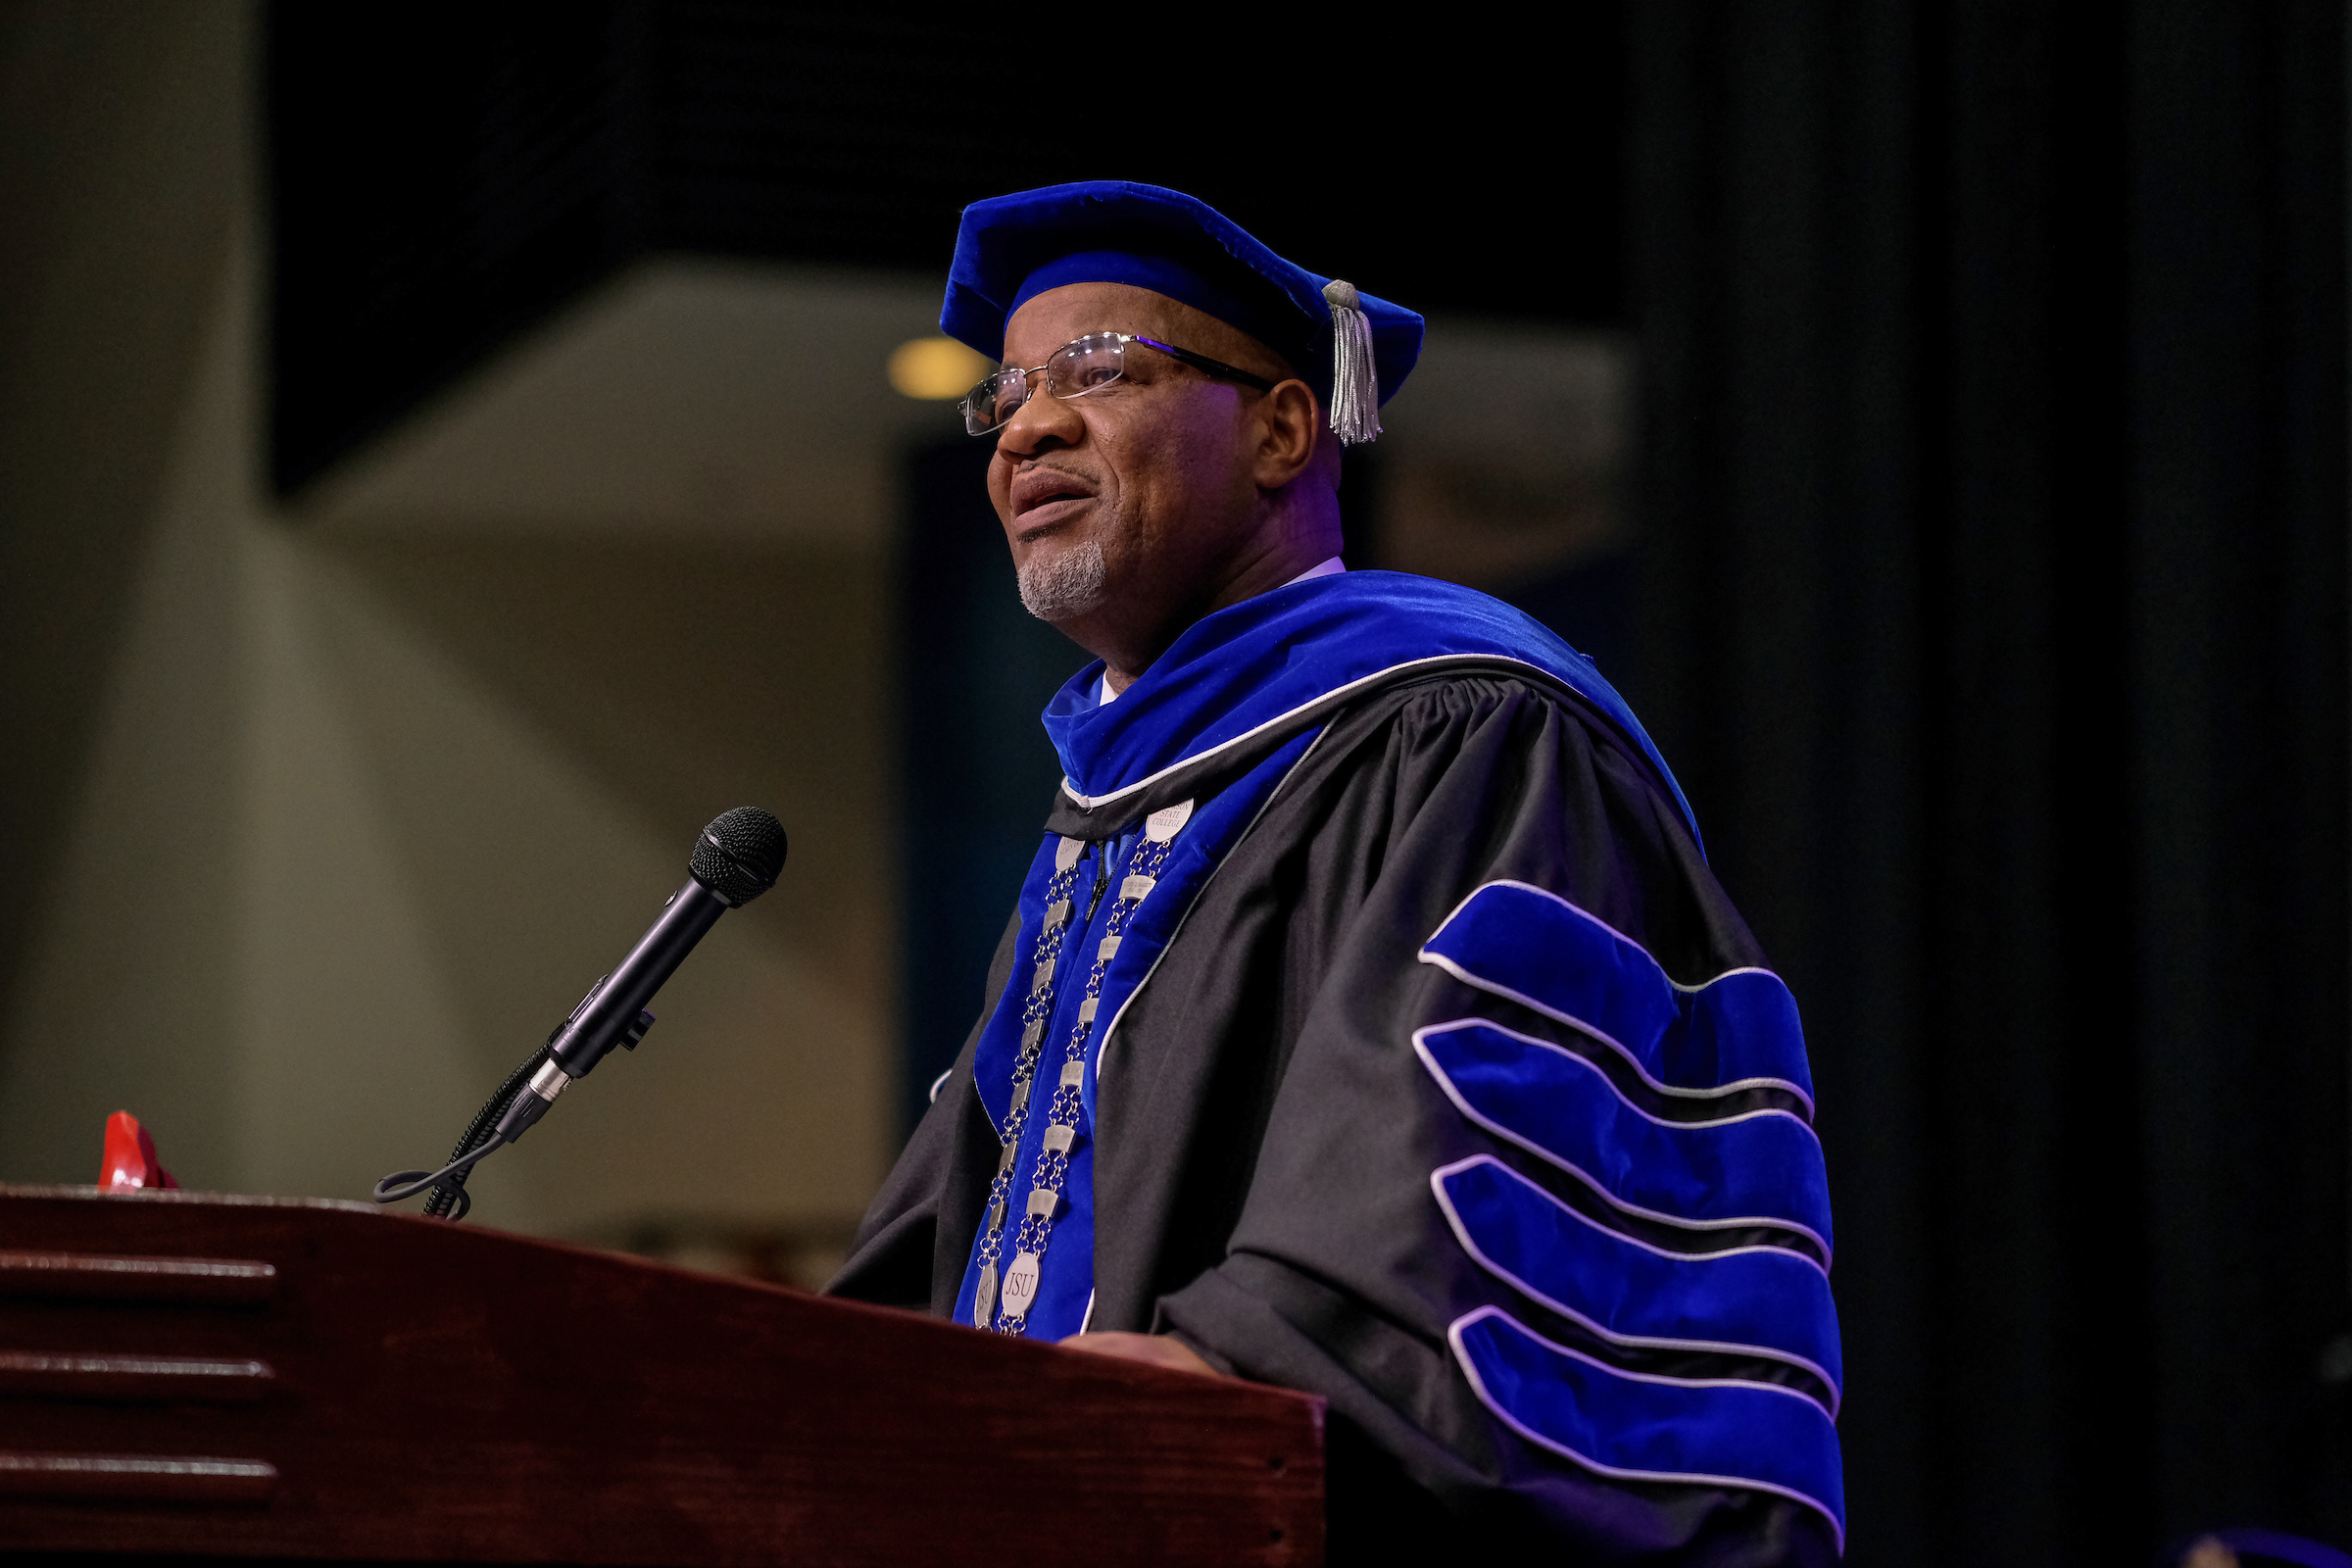 Dr. William B. Bynum Jr., JSU president, engaged the audience in his infamous 'God is good, all the time' call and response. (Charles A. Smith/University Communications)